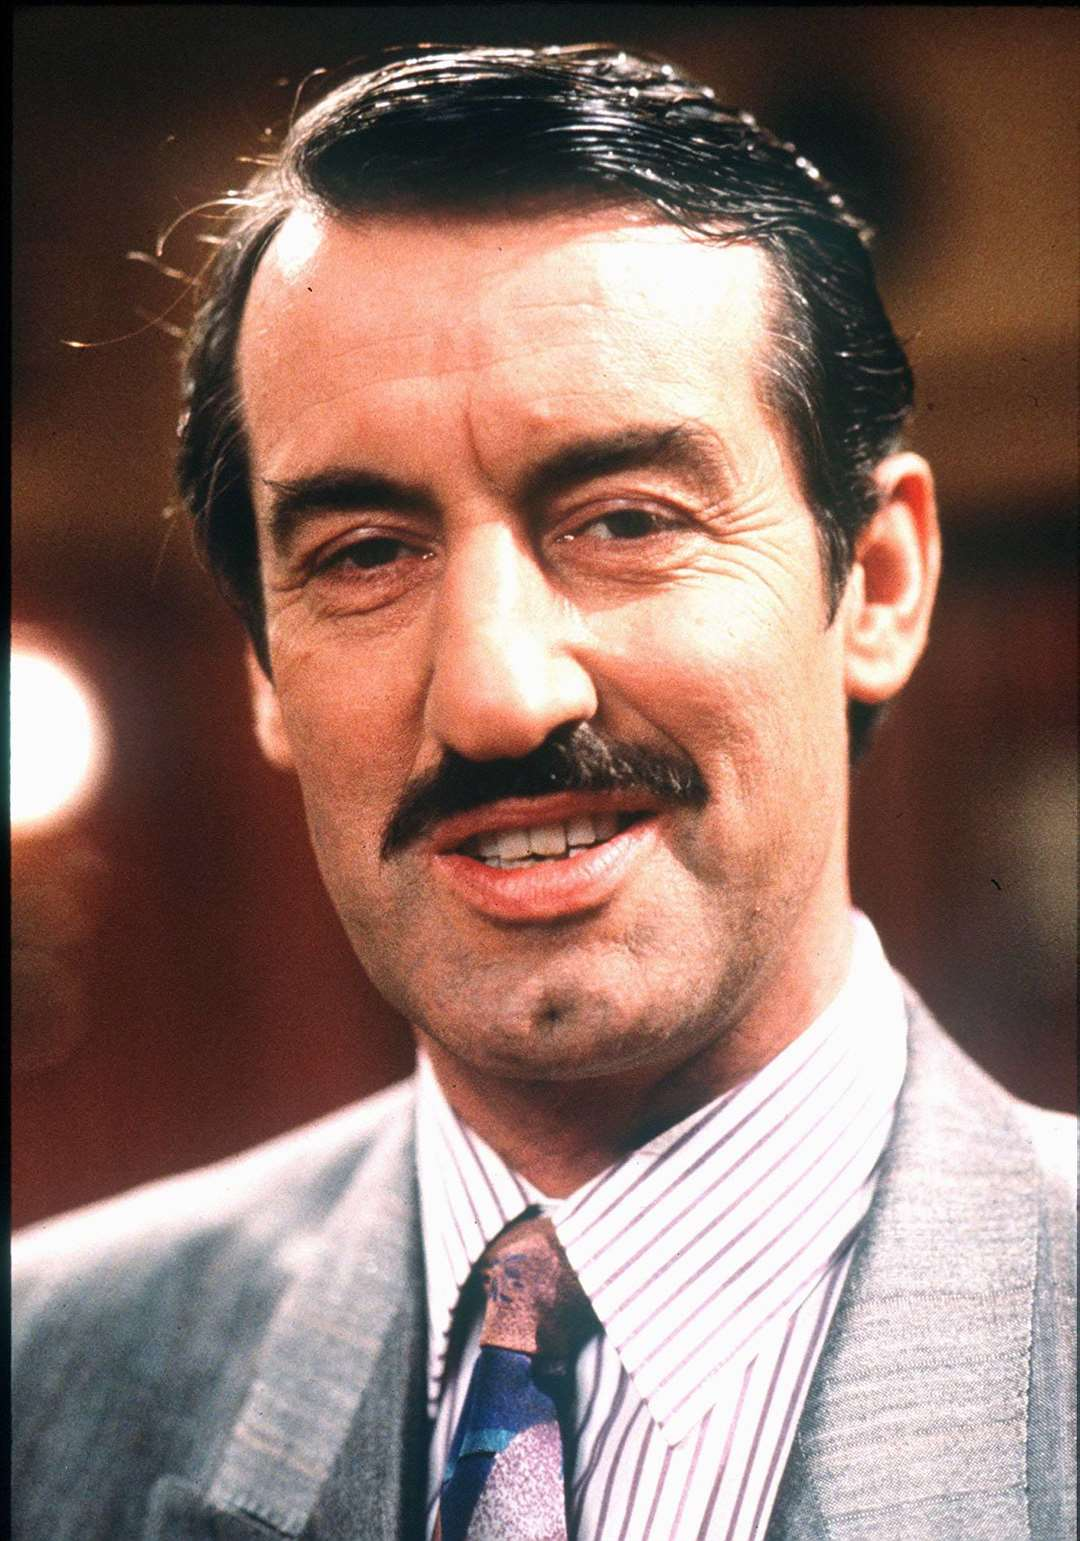 Actor John Challis (Boycie from Only Fools and Horses) stars at Geekmania 2019 at Springfields Events Centre in Spalding this Saturday and Sunday. (7177757)